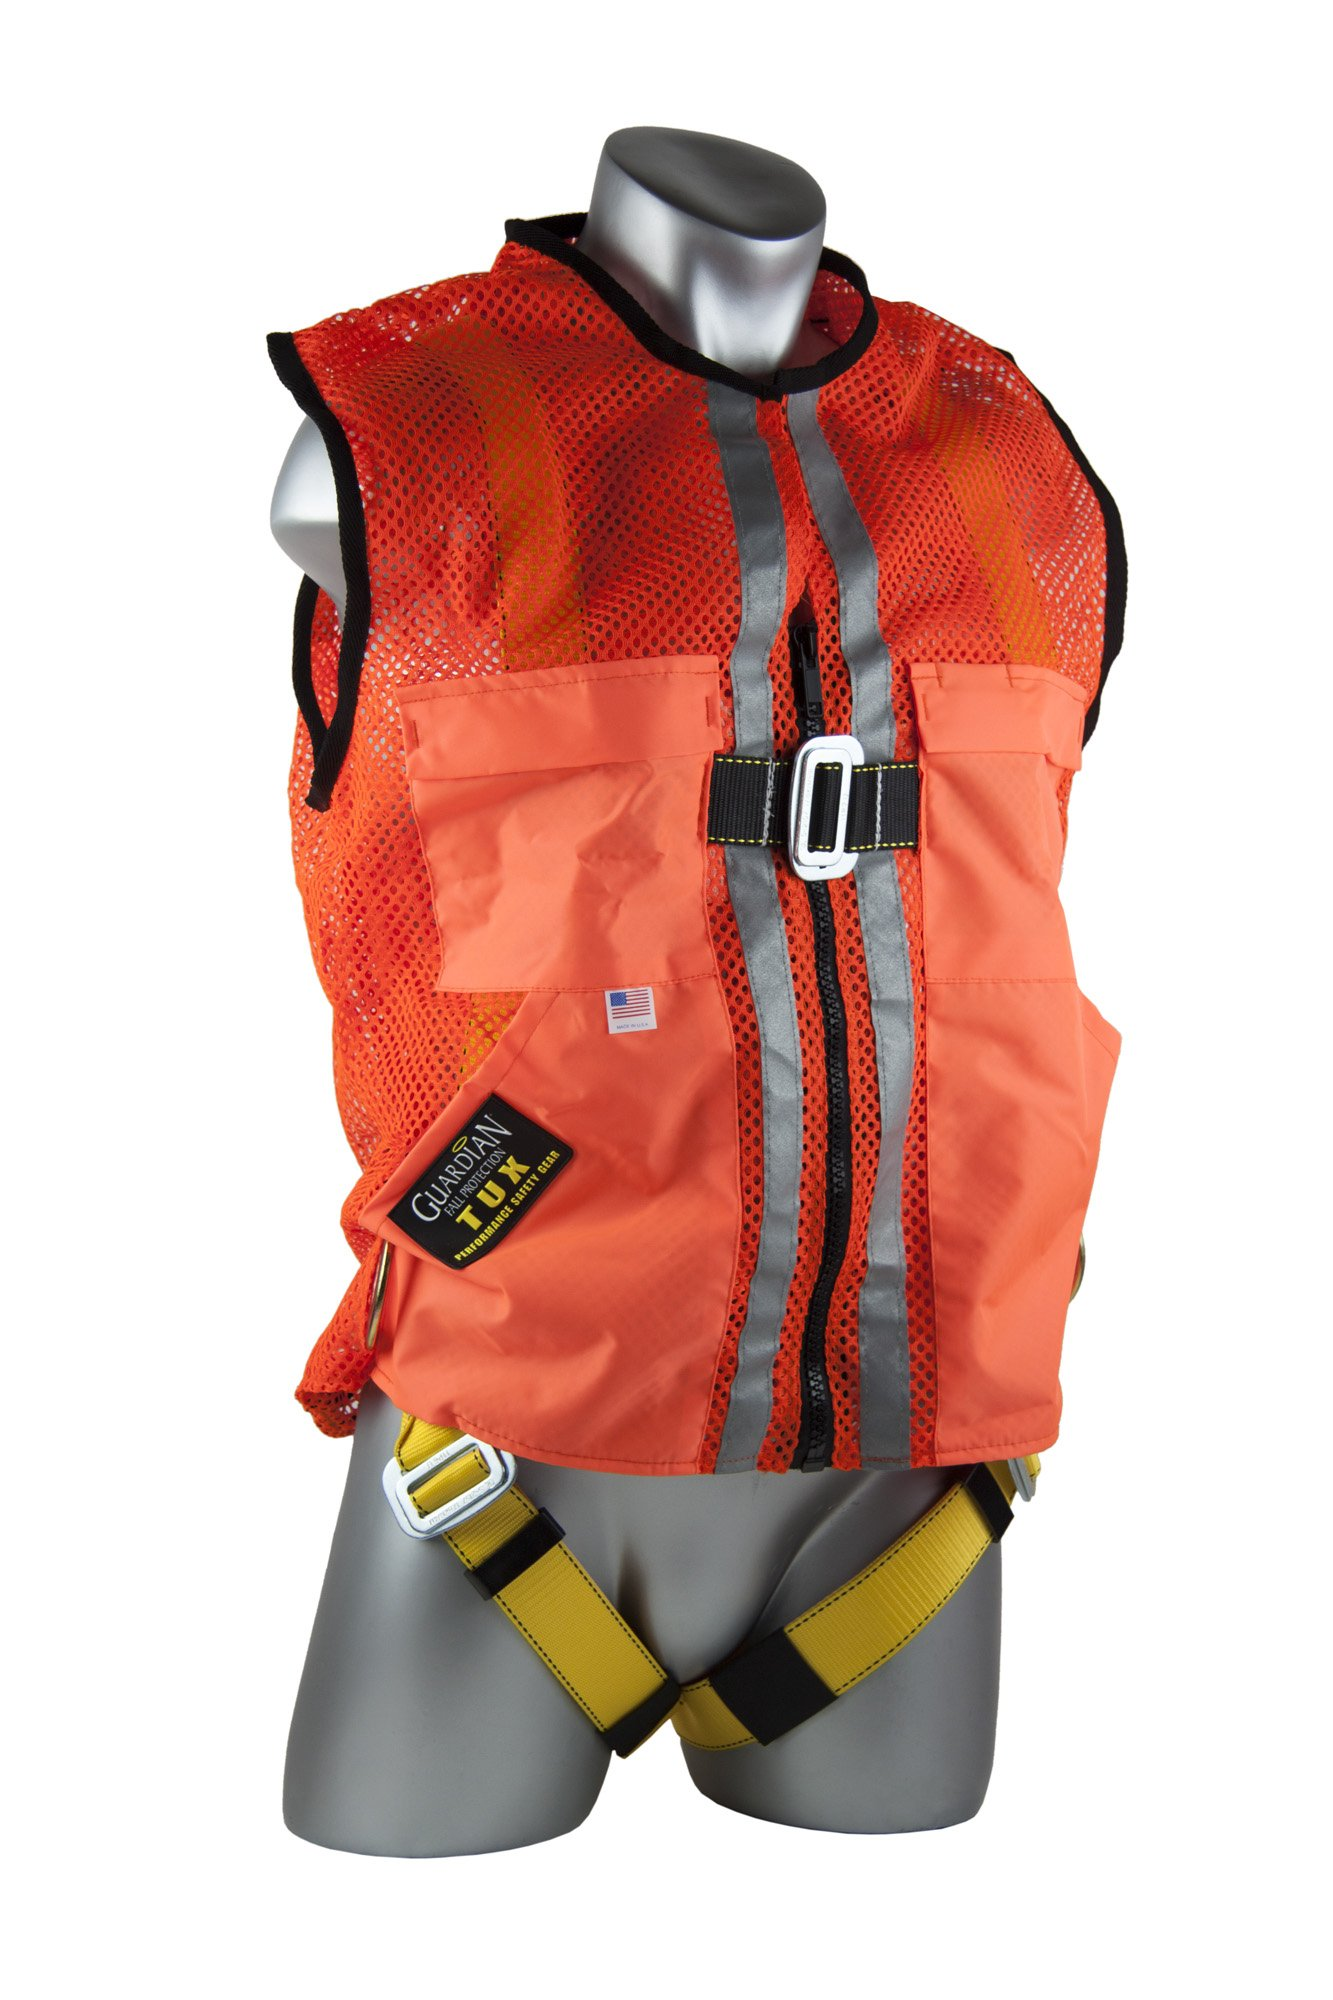 Guardian Fall Protection 02130 Orange Mesh Construction Tux Harness, XL